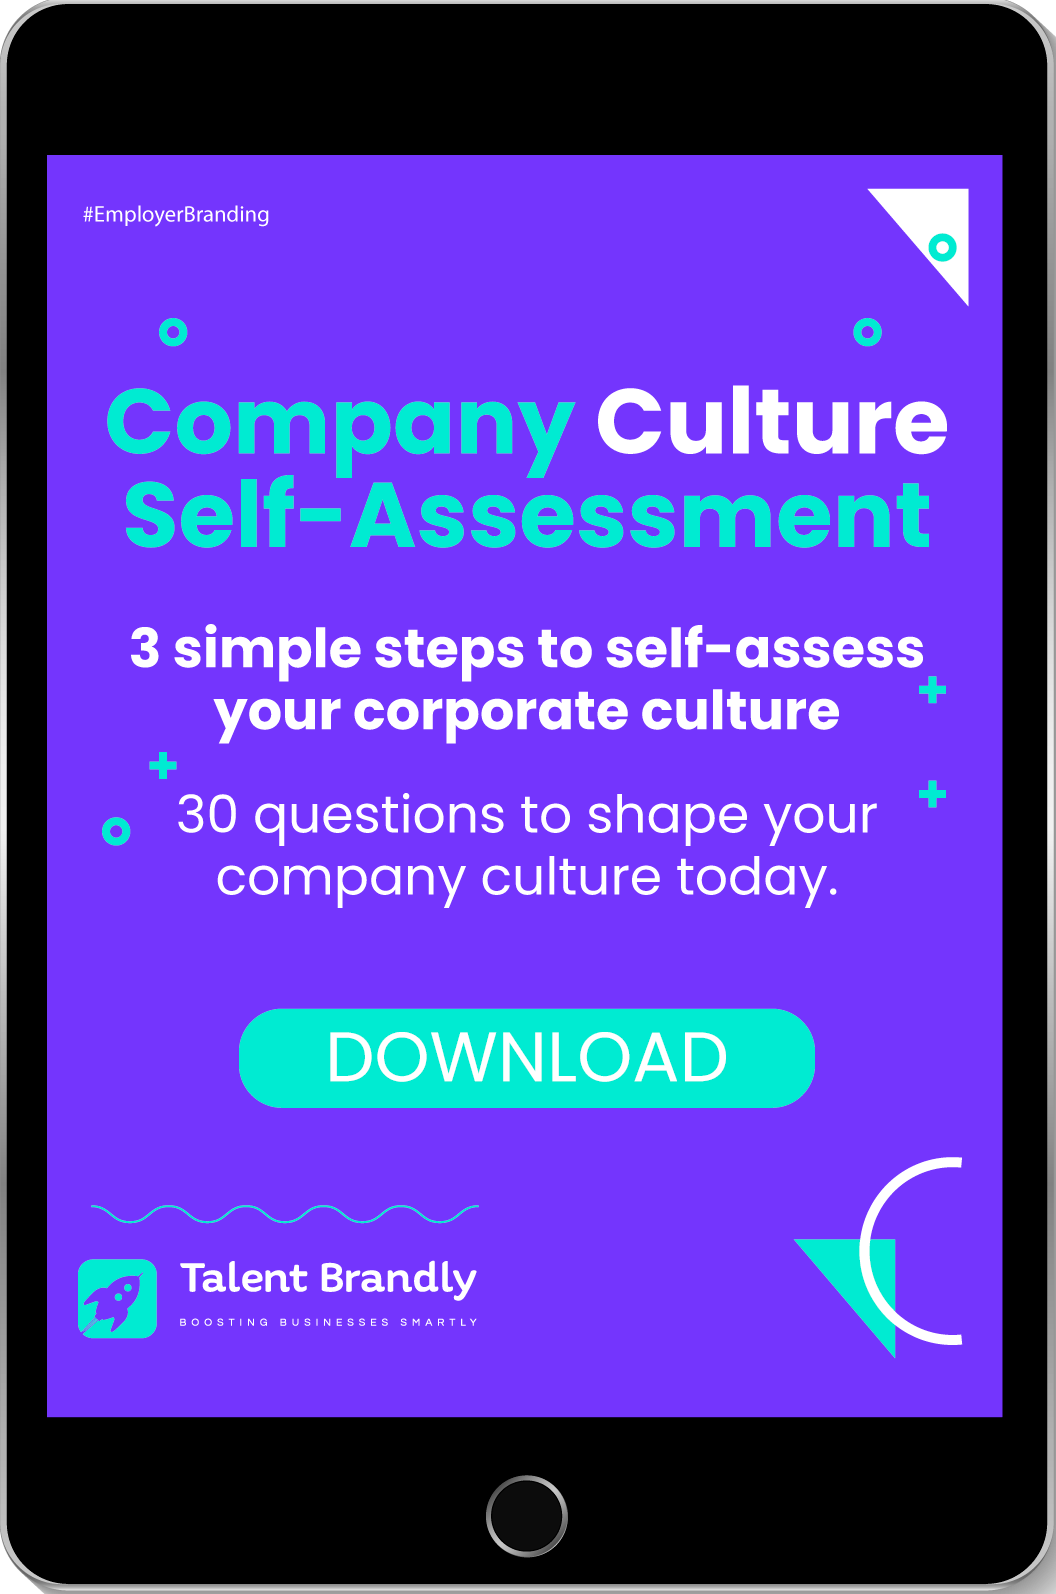 Company Culture Self-Assessment